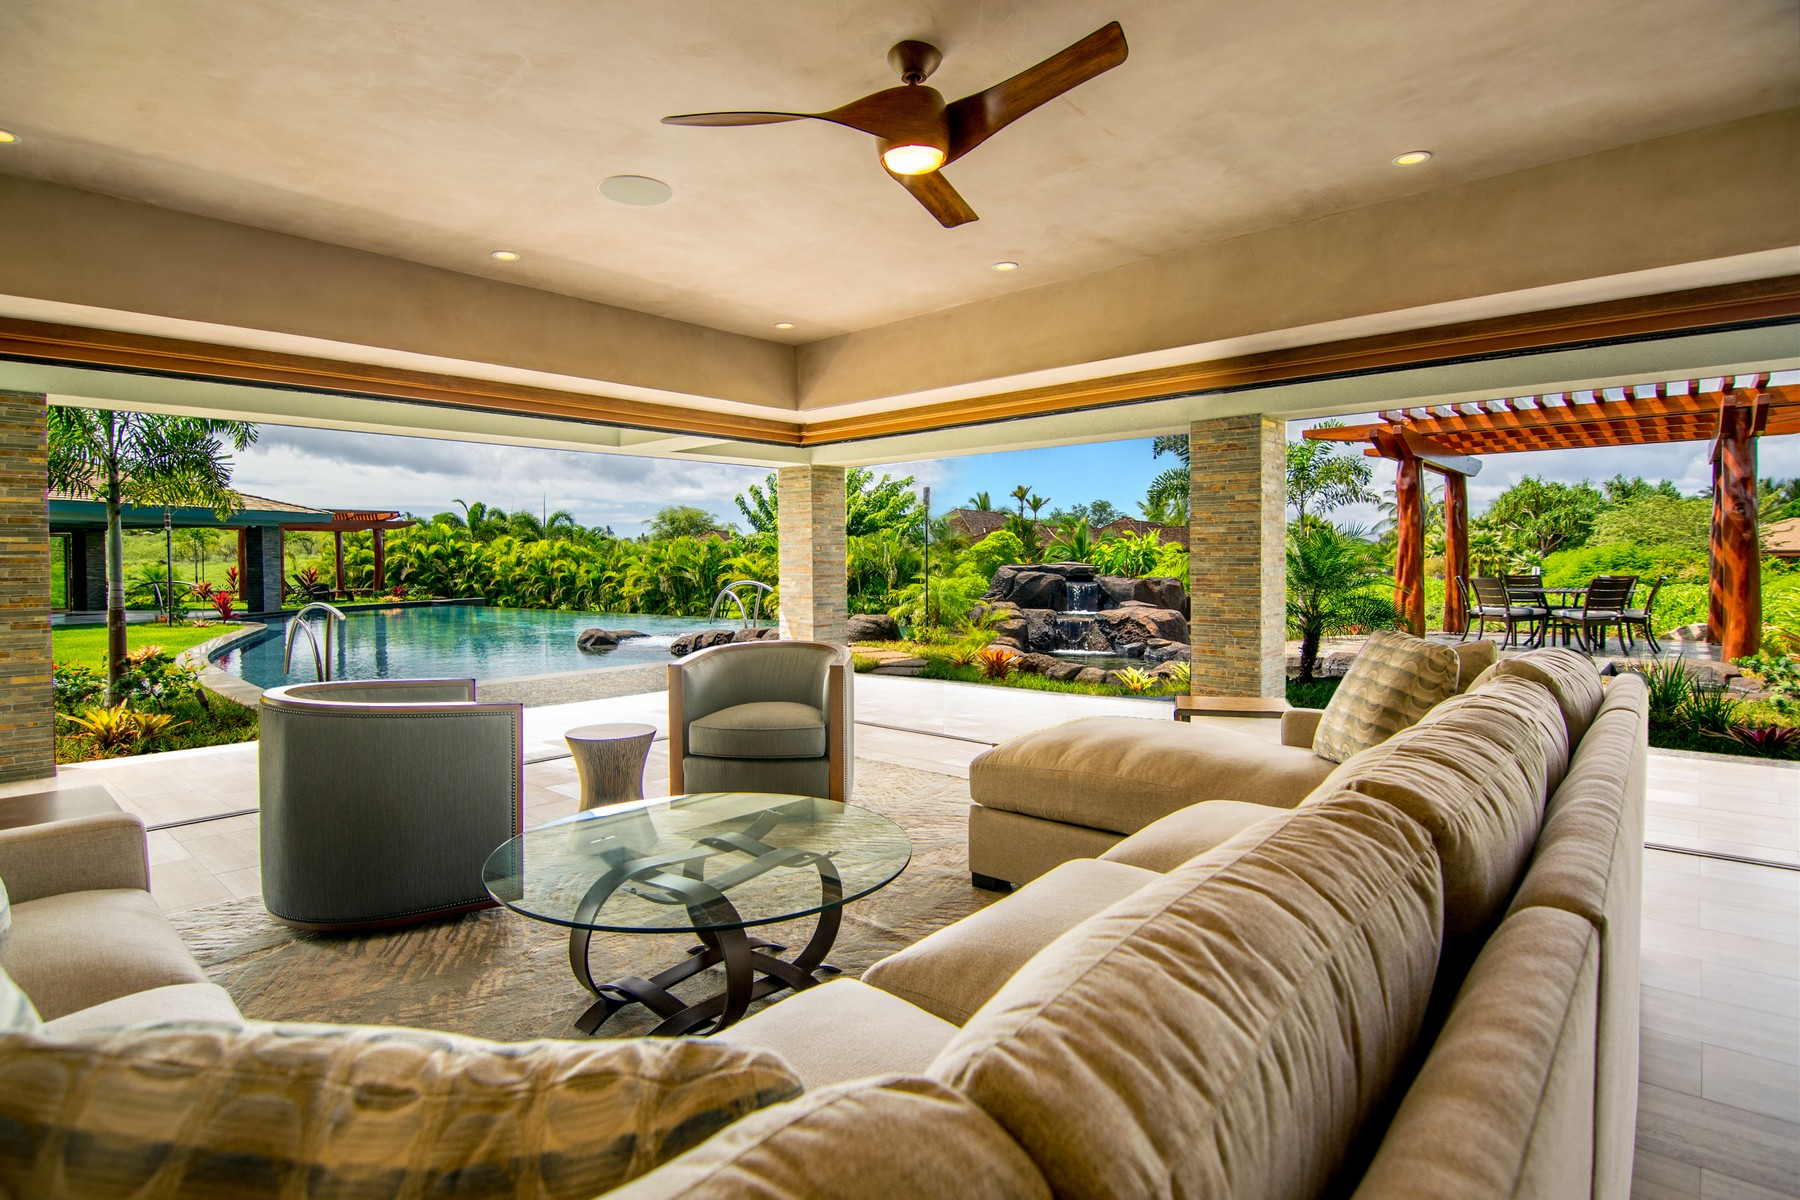 Single Family Home for Sale at Perfection 18 Ualei Place Makena, Hawaii, 96753 United States